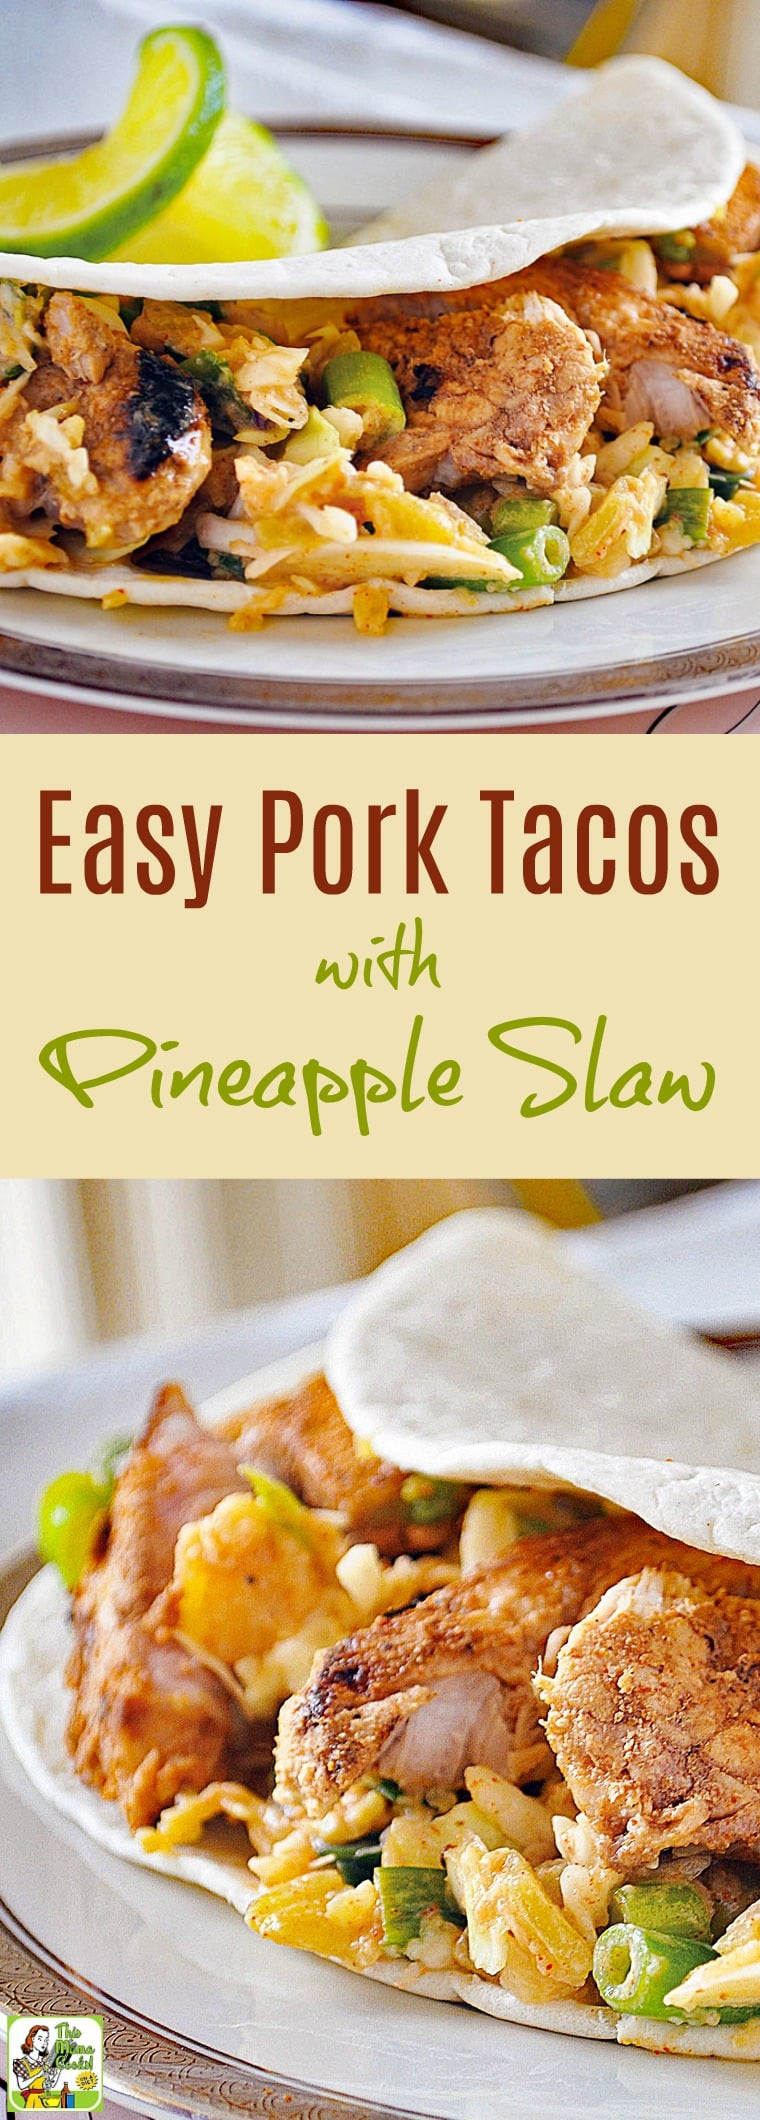 This Easy Pork Tacos with Pineapple Slaw is perfect for busy weeknights. Make on the stovetop or outside on the grill. Serve on flour tortillas or gluten free corn tortillas. Can be made dairy free, too. Click to get this easy and healthy pork taco recipe. Diabetic friendly!